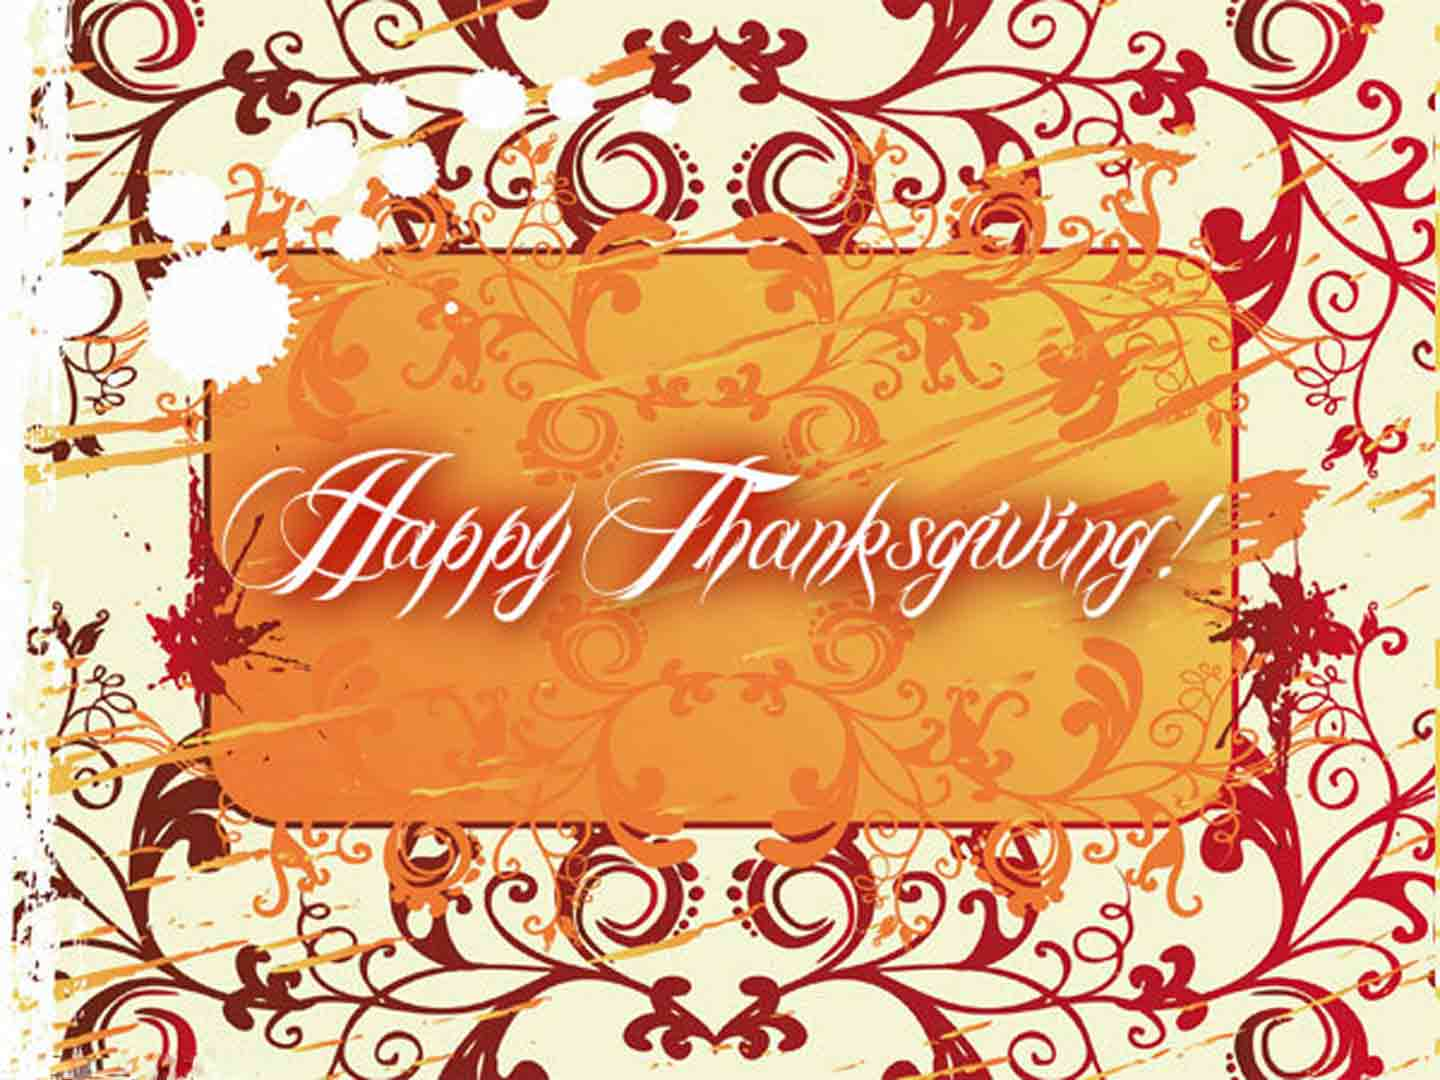 Free Happy Thanksgiving Wallpapers - Wallpaper Cave